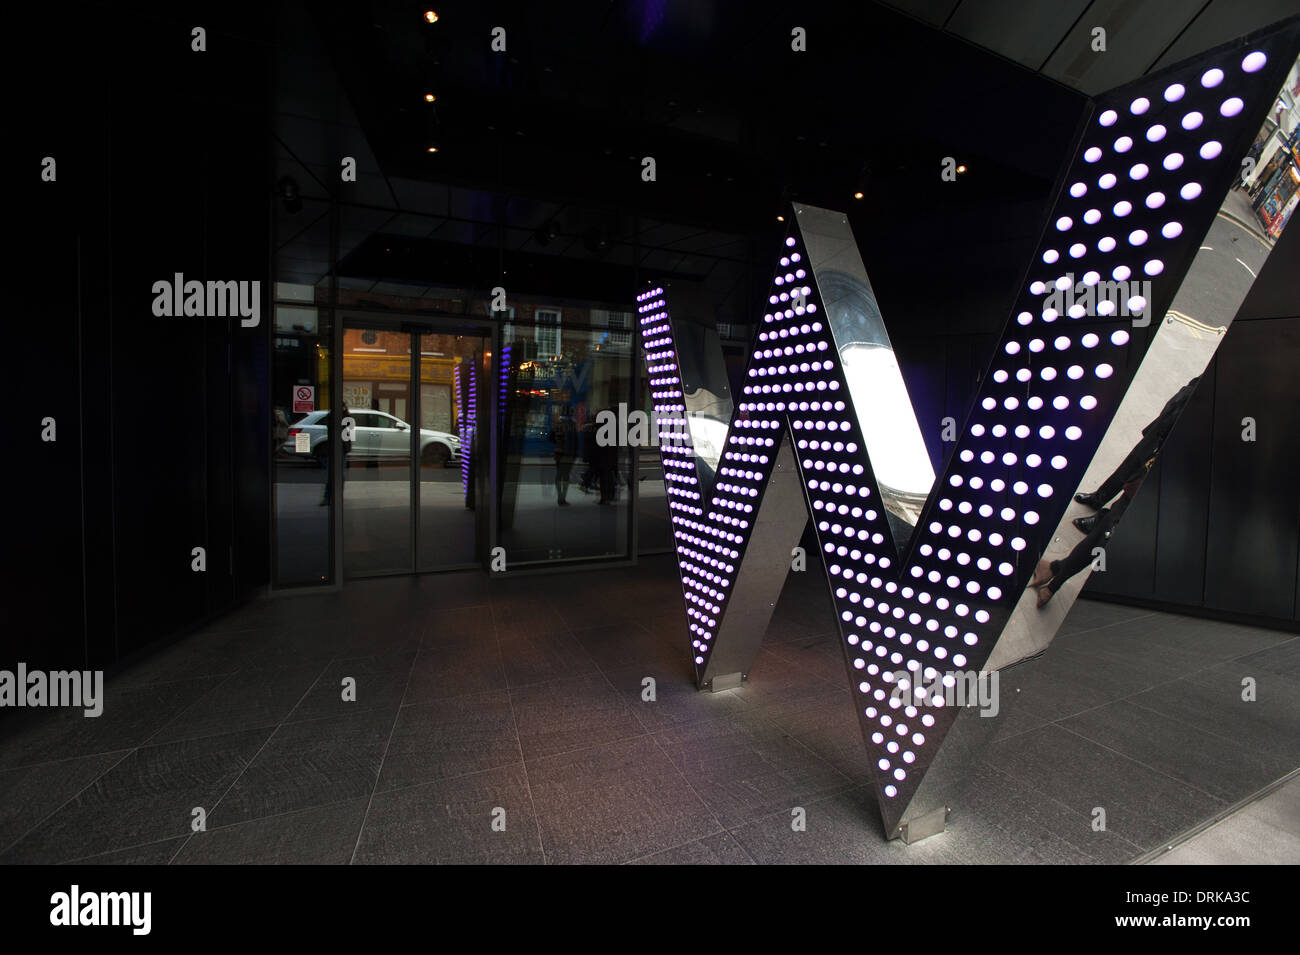 W London Leicester Square - Stock Image